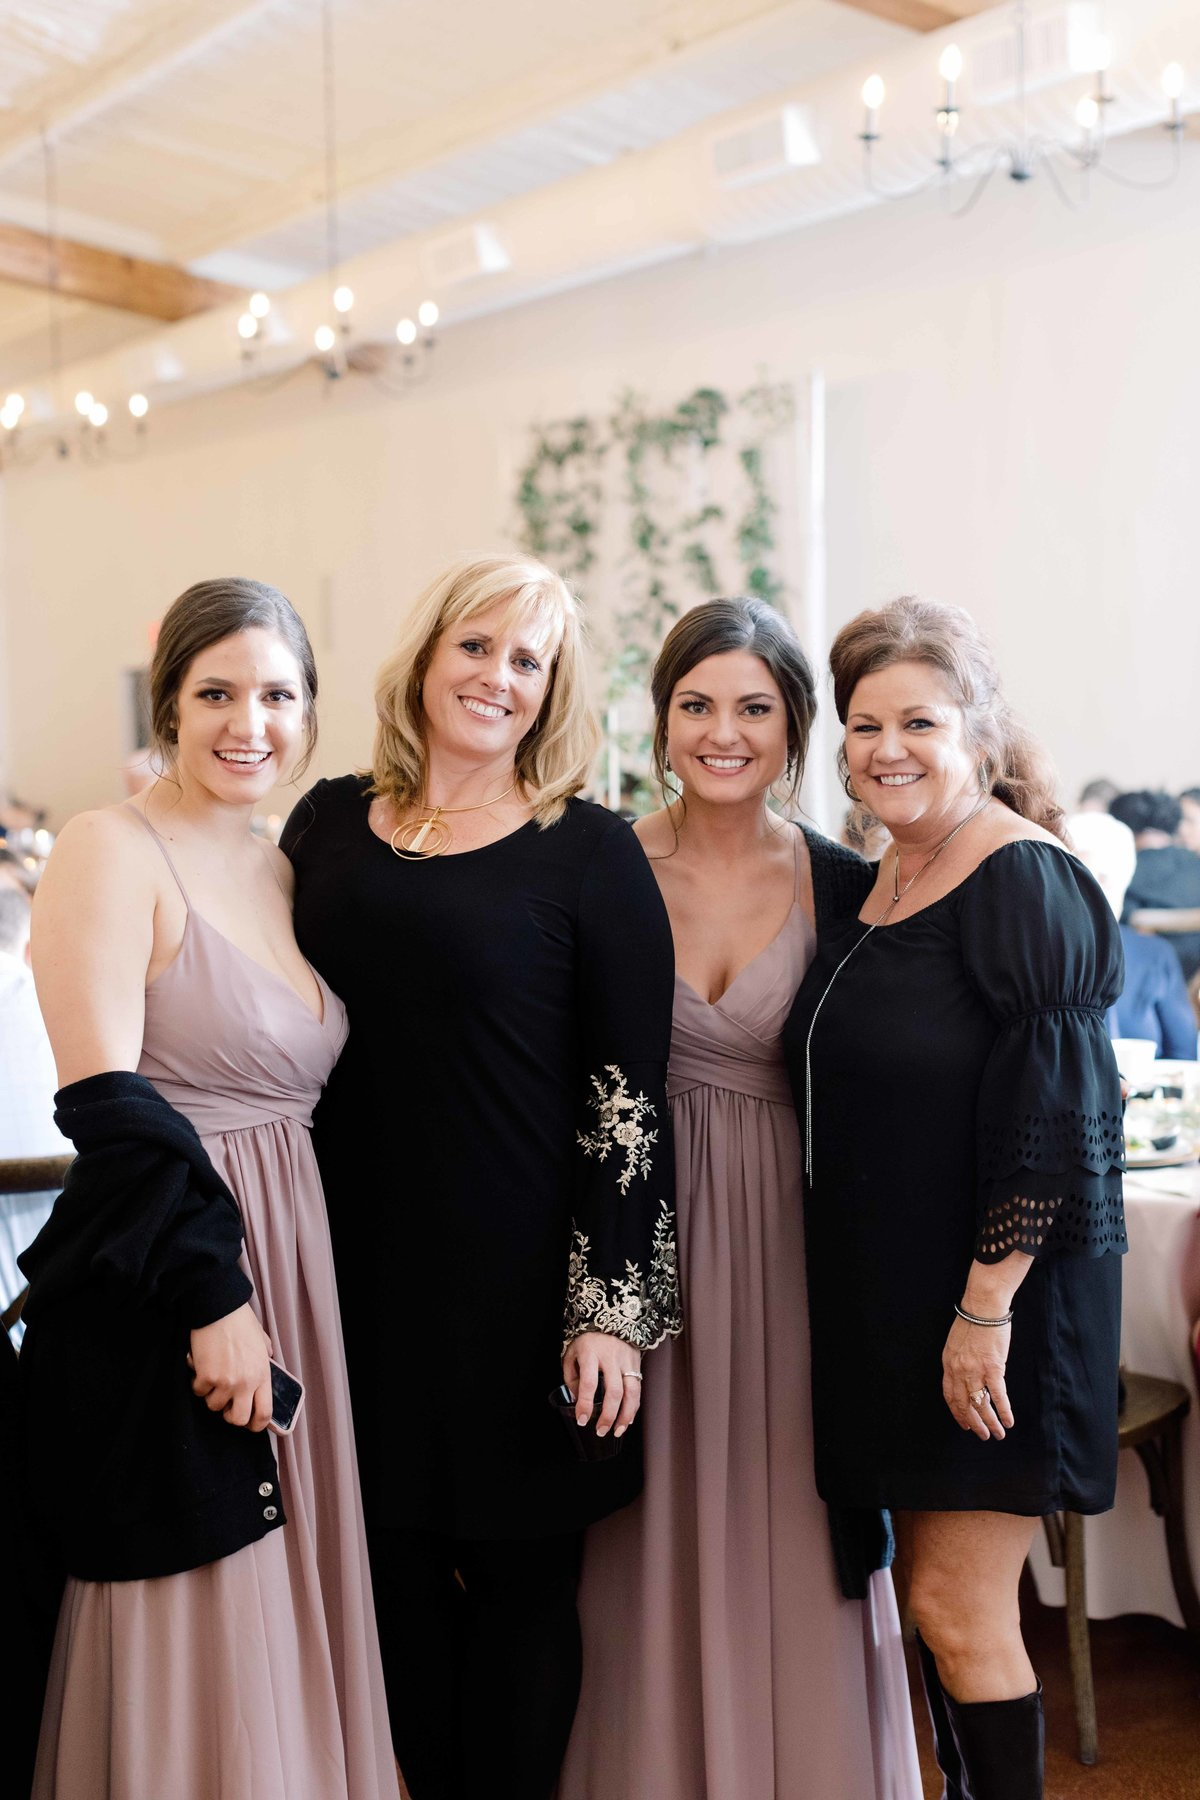 Angel_owens_photography_wedding100